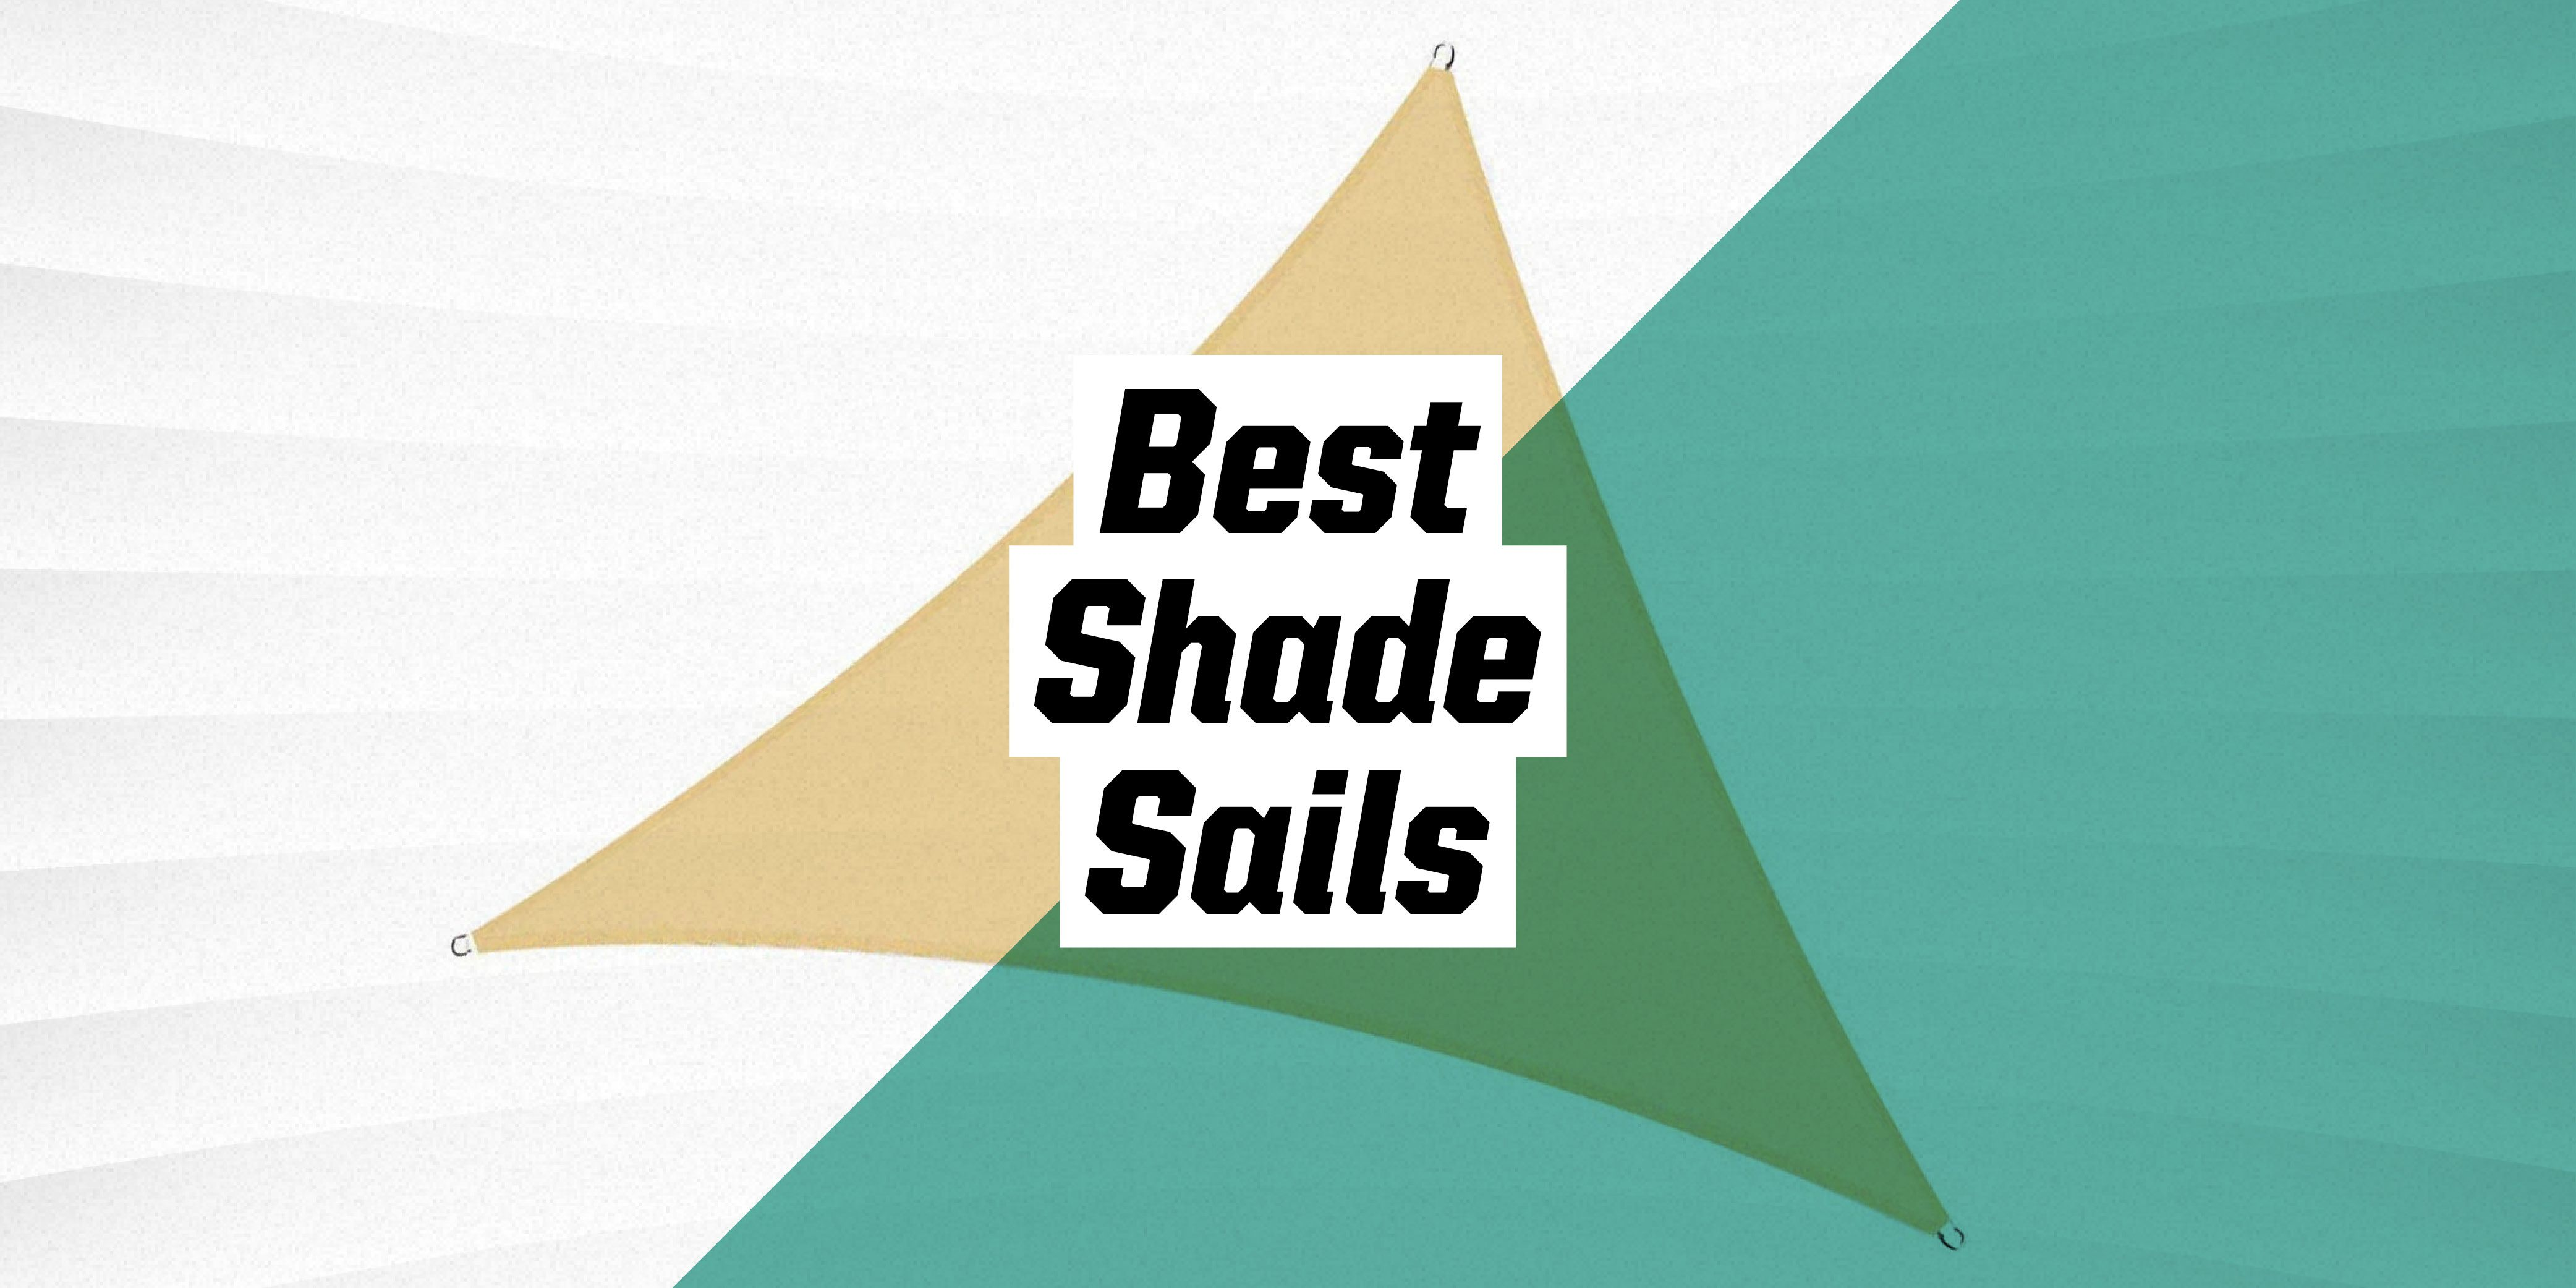 The 10 Best Shade Sails to Beat the Heat